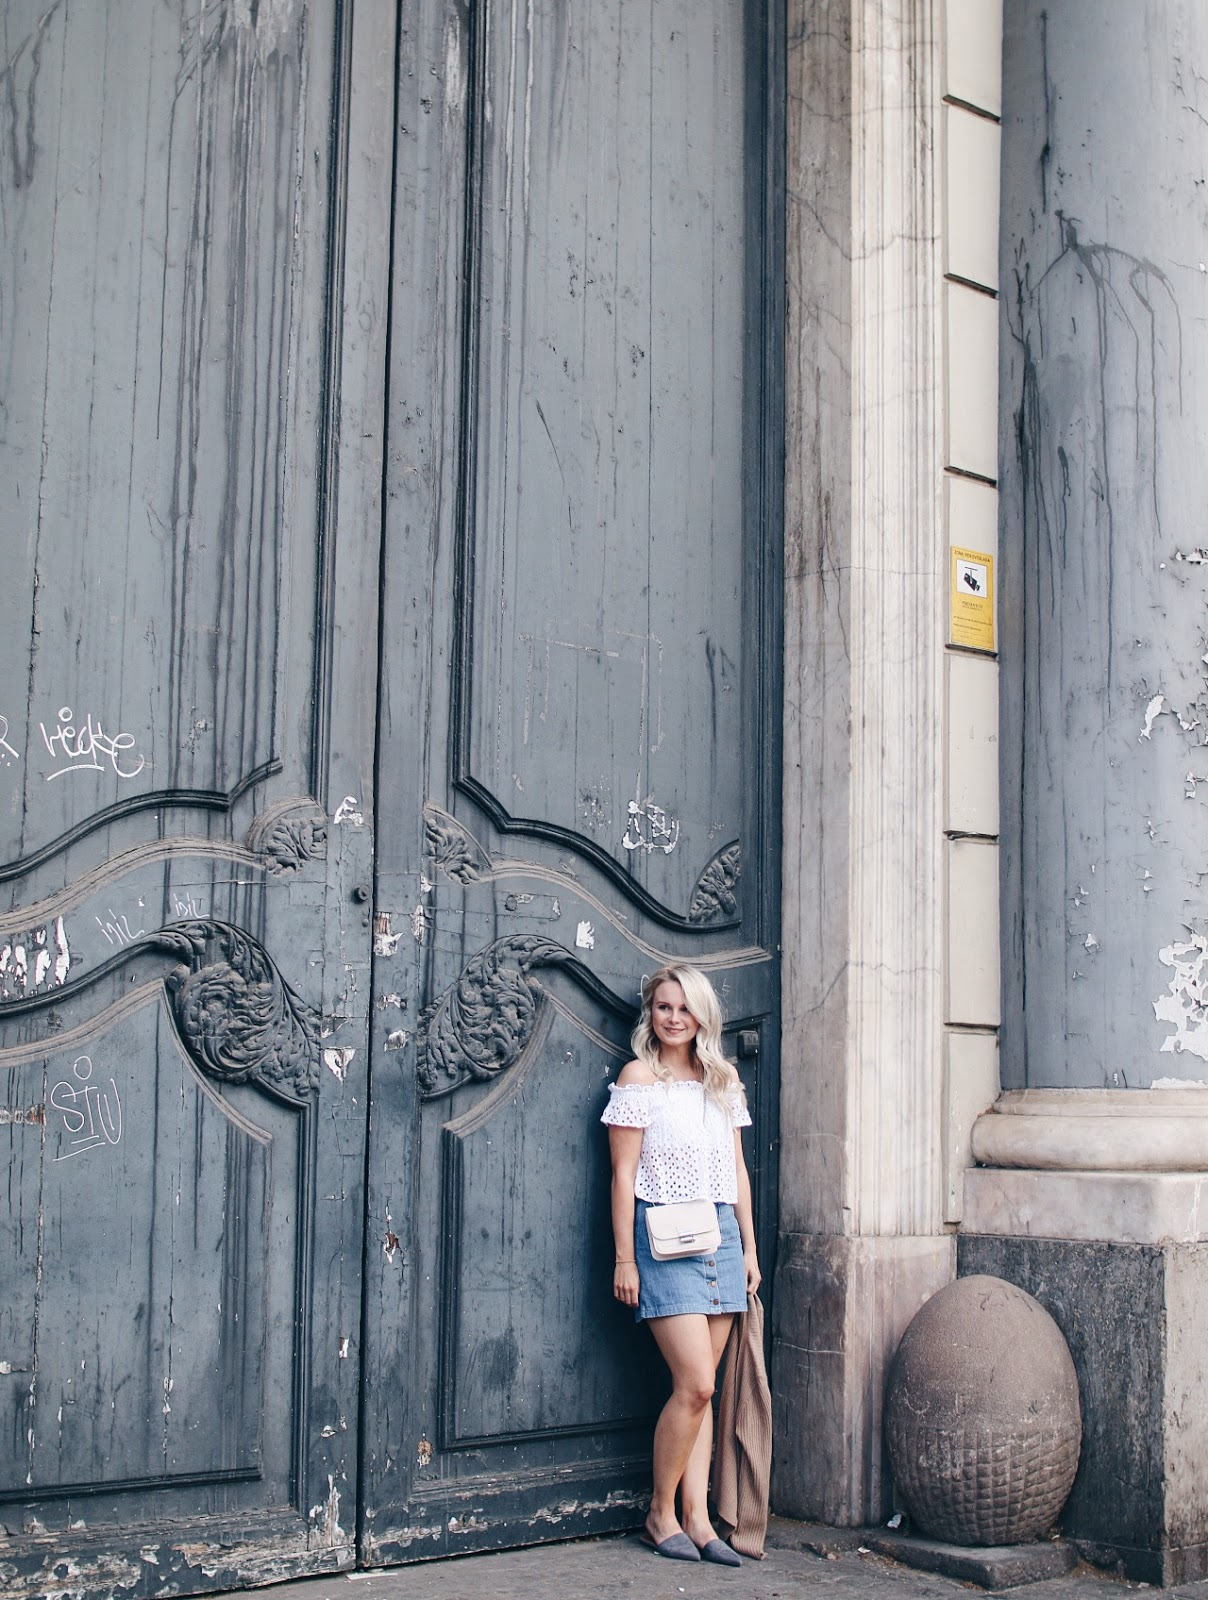 summer outfit in barcelona, spain